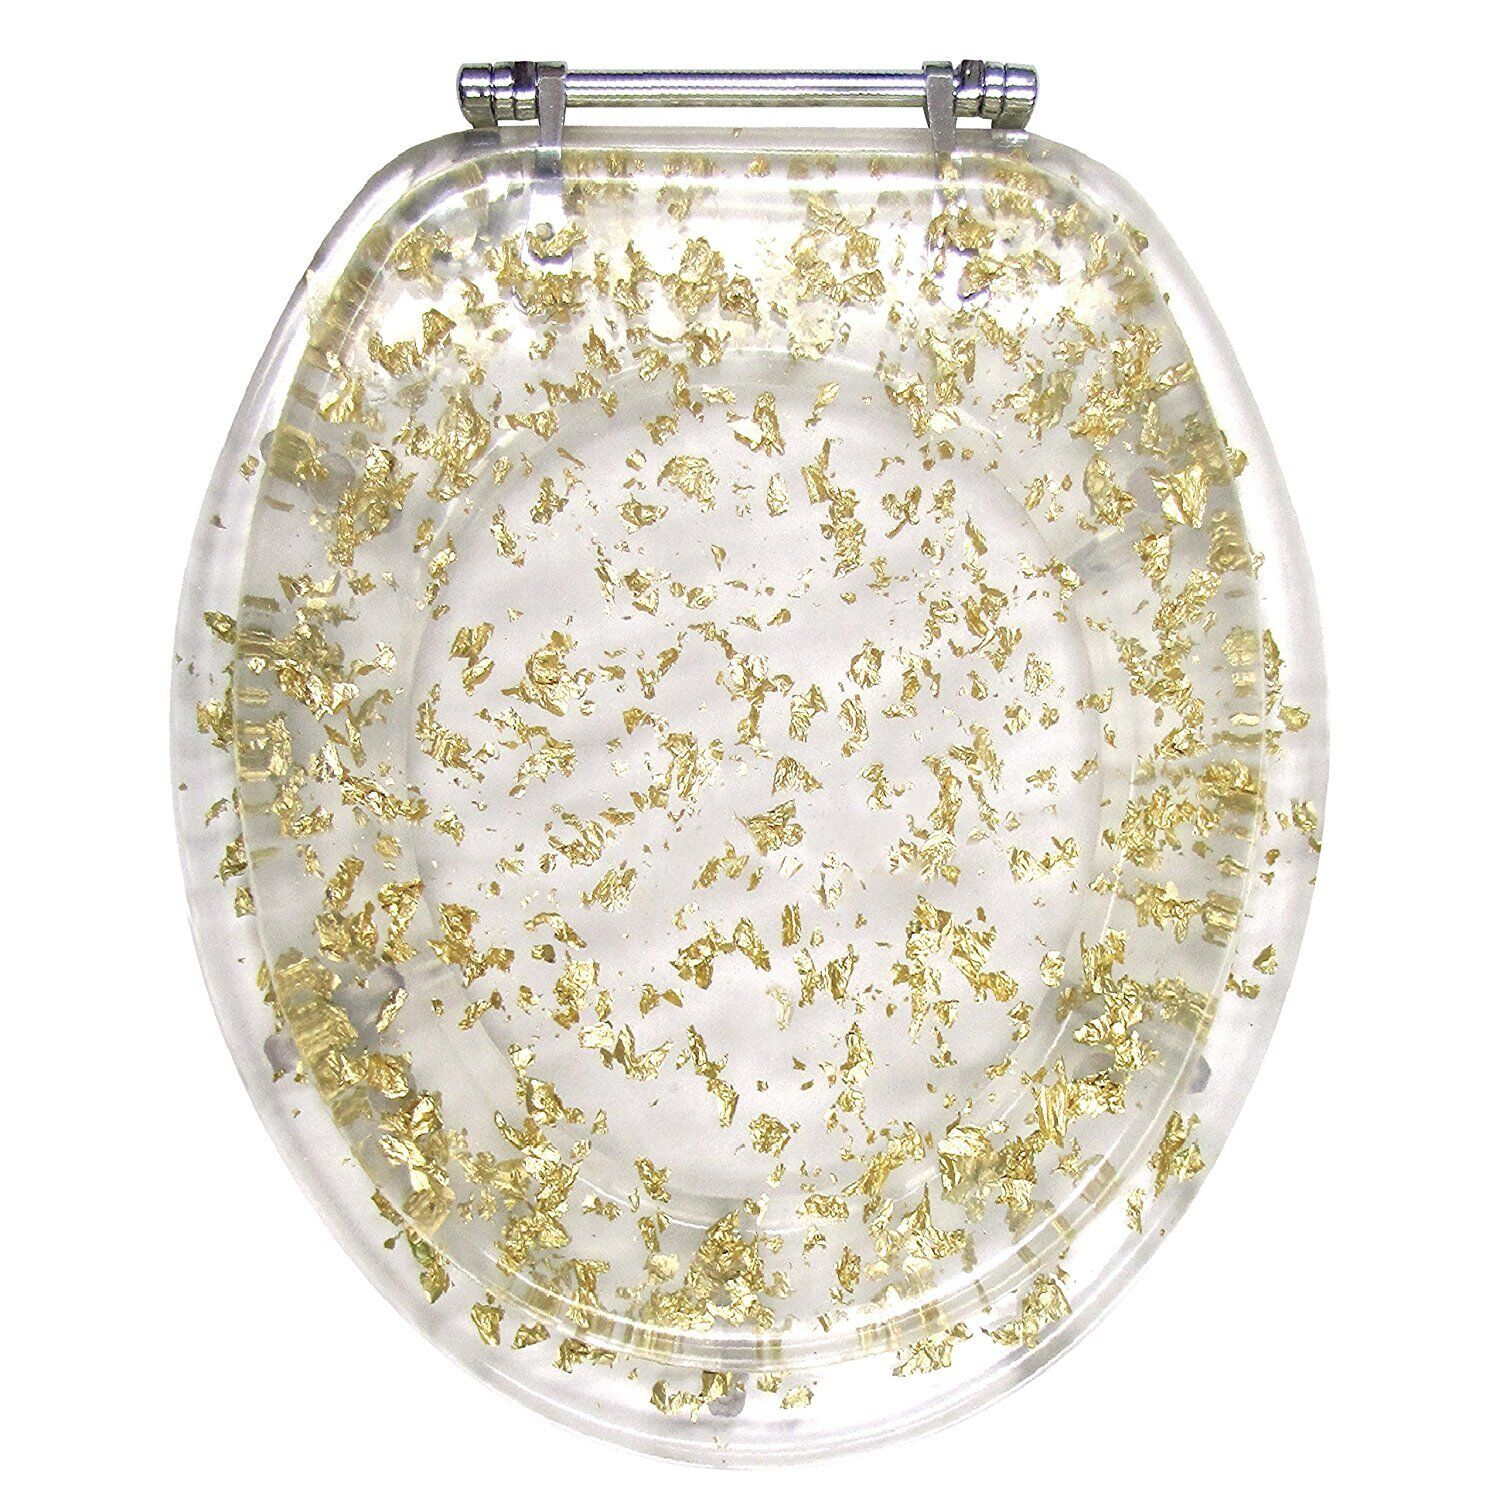 Gold FOIL FOIL FOIL RESIN ACRYLIC TOILET SEAT, ELONGATED ROUND WITH CHROME HINGES 172edb